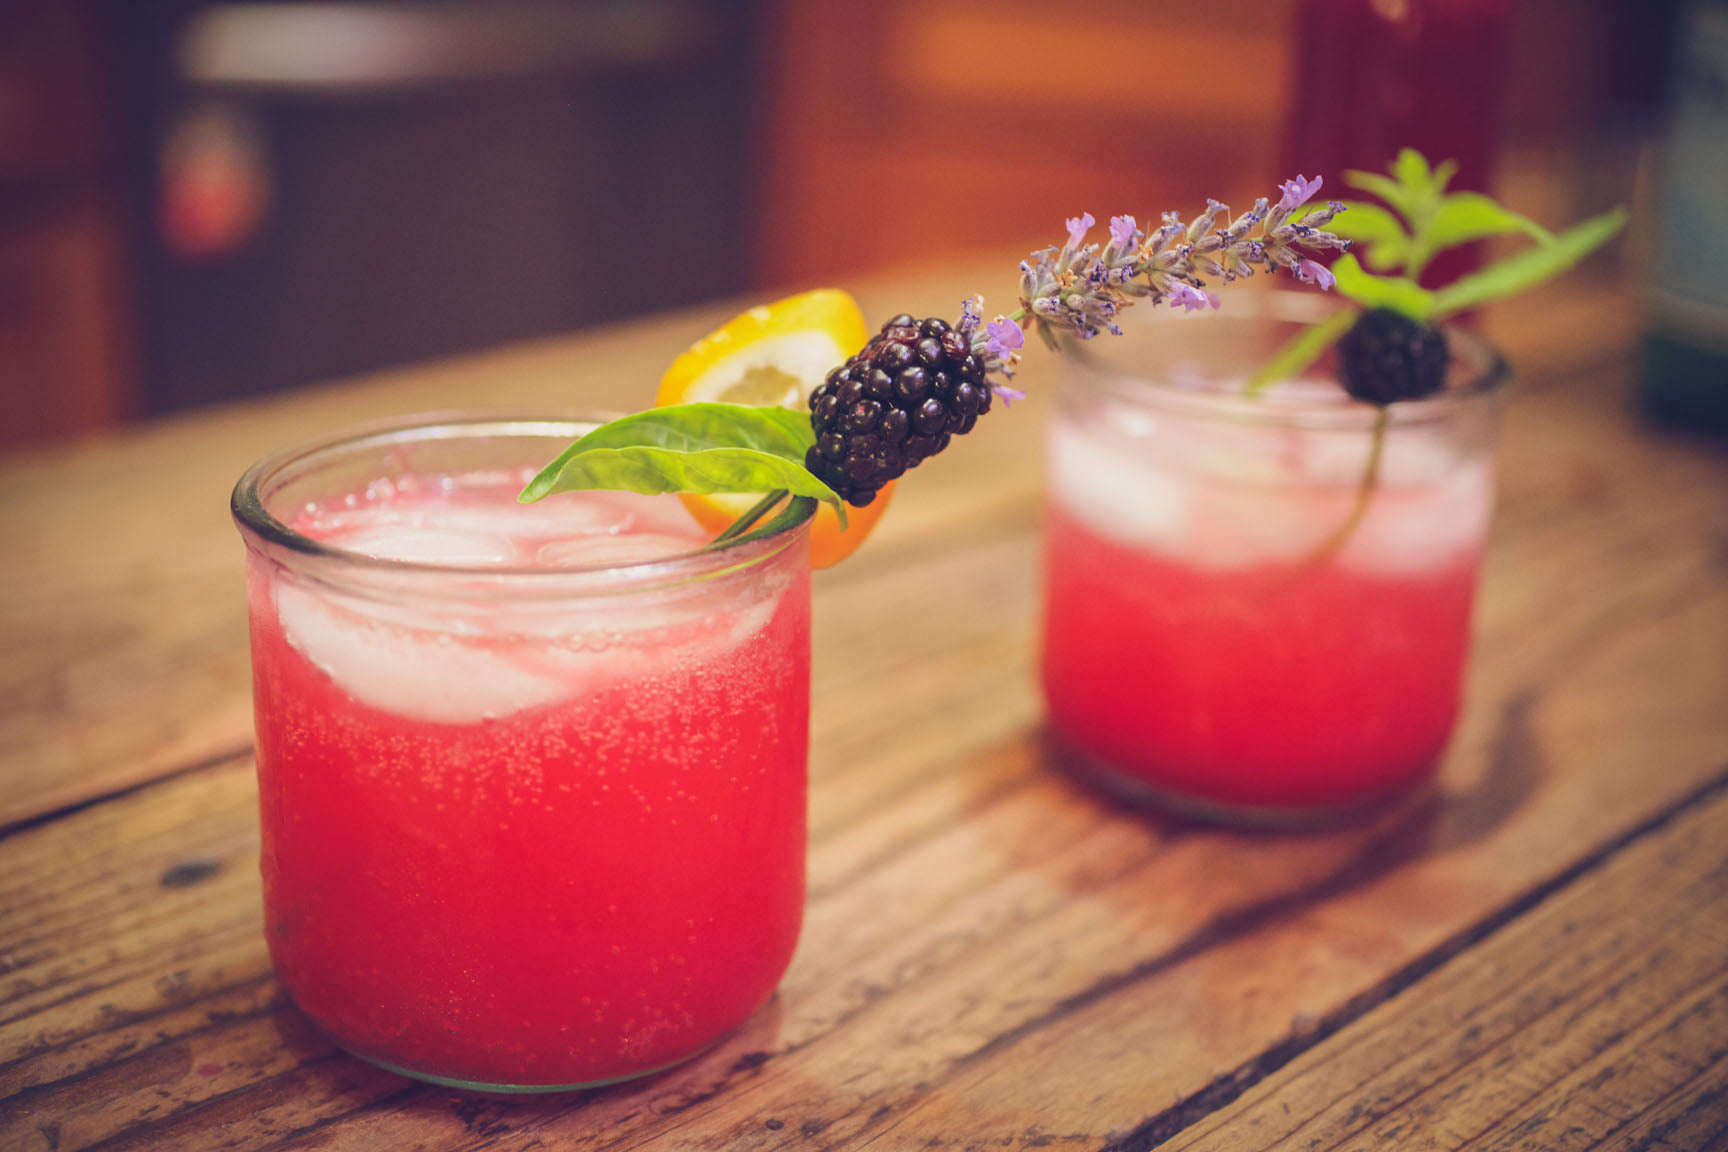 Lemon, Basil and Blackberry Shrub | Mountain Feed & Farm Supply